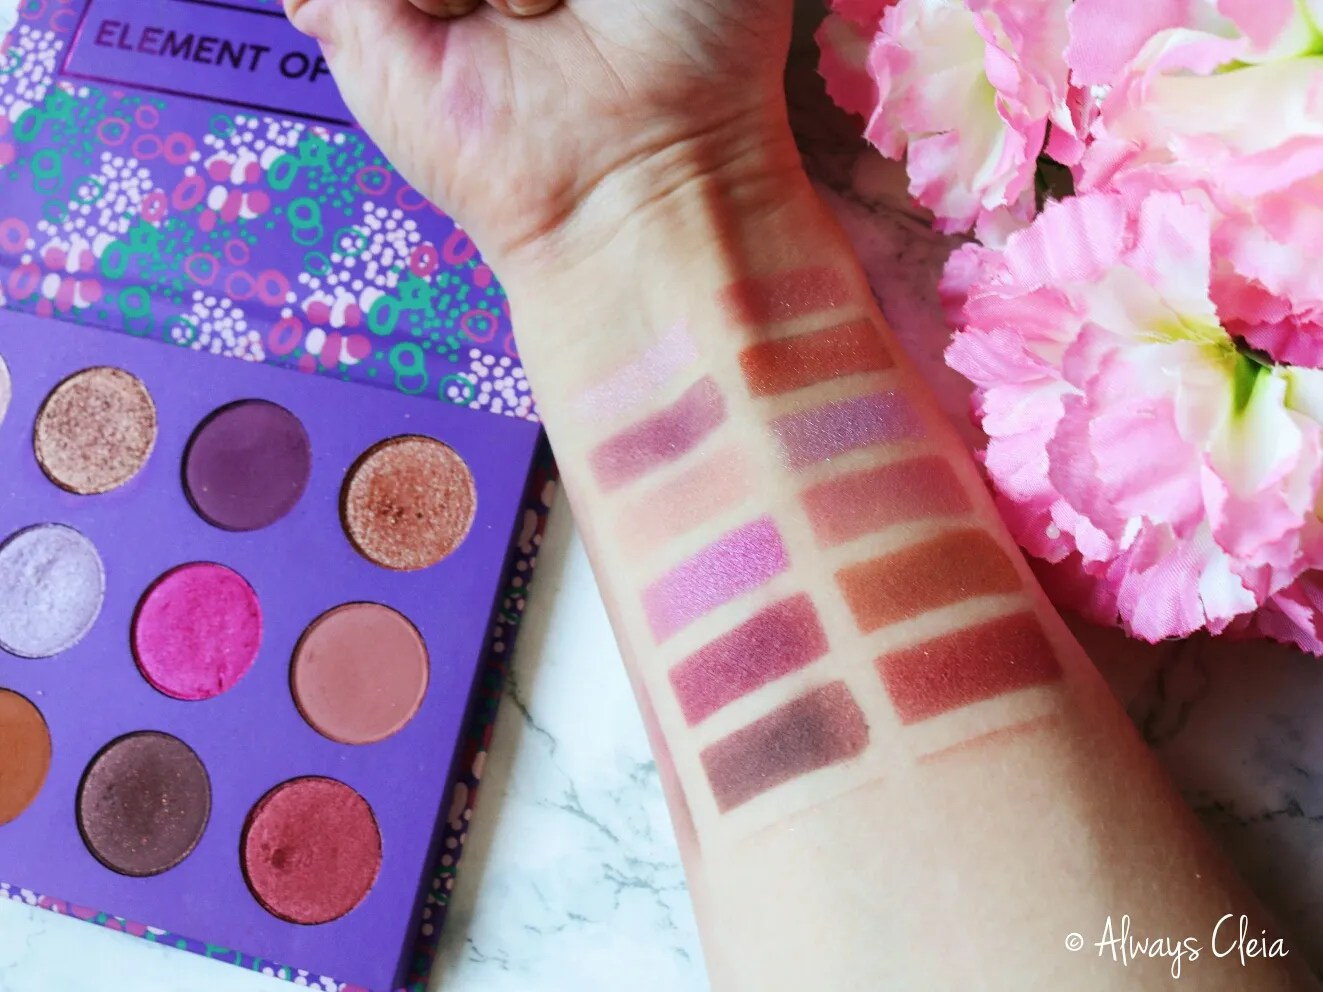 ColourPop Element of Surprise Palette Swatches